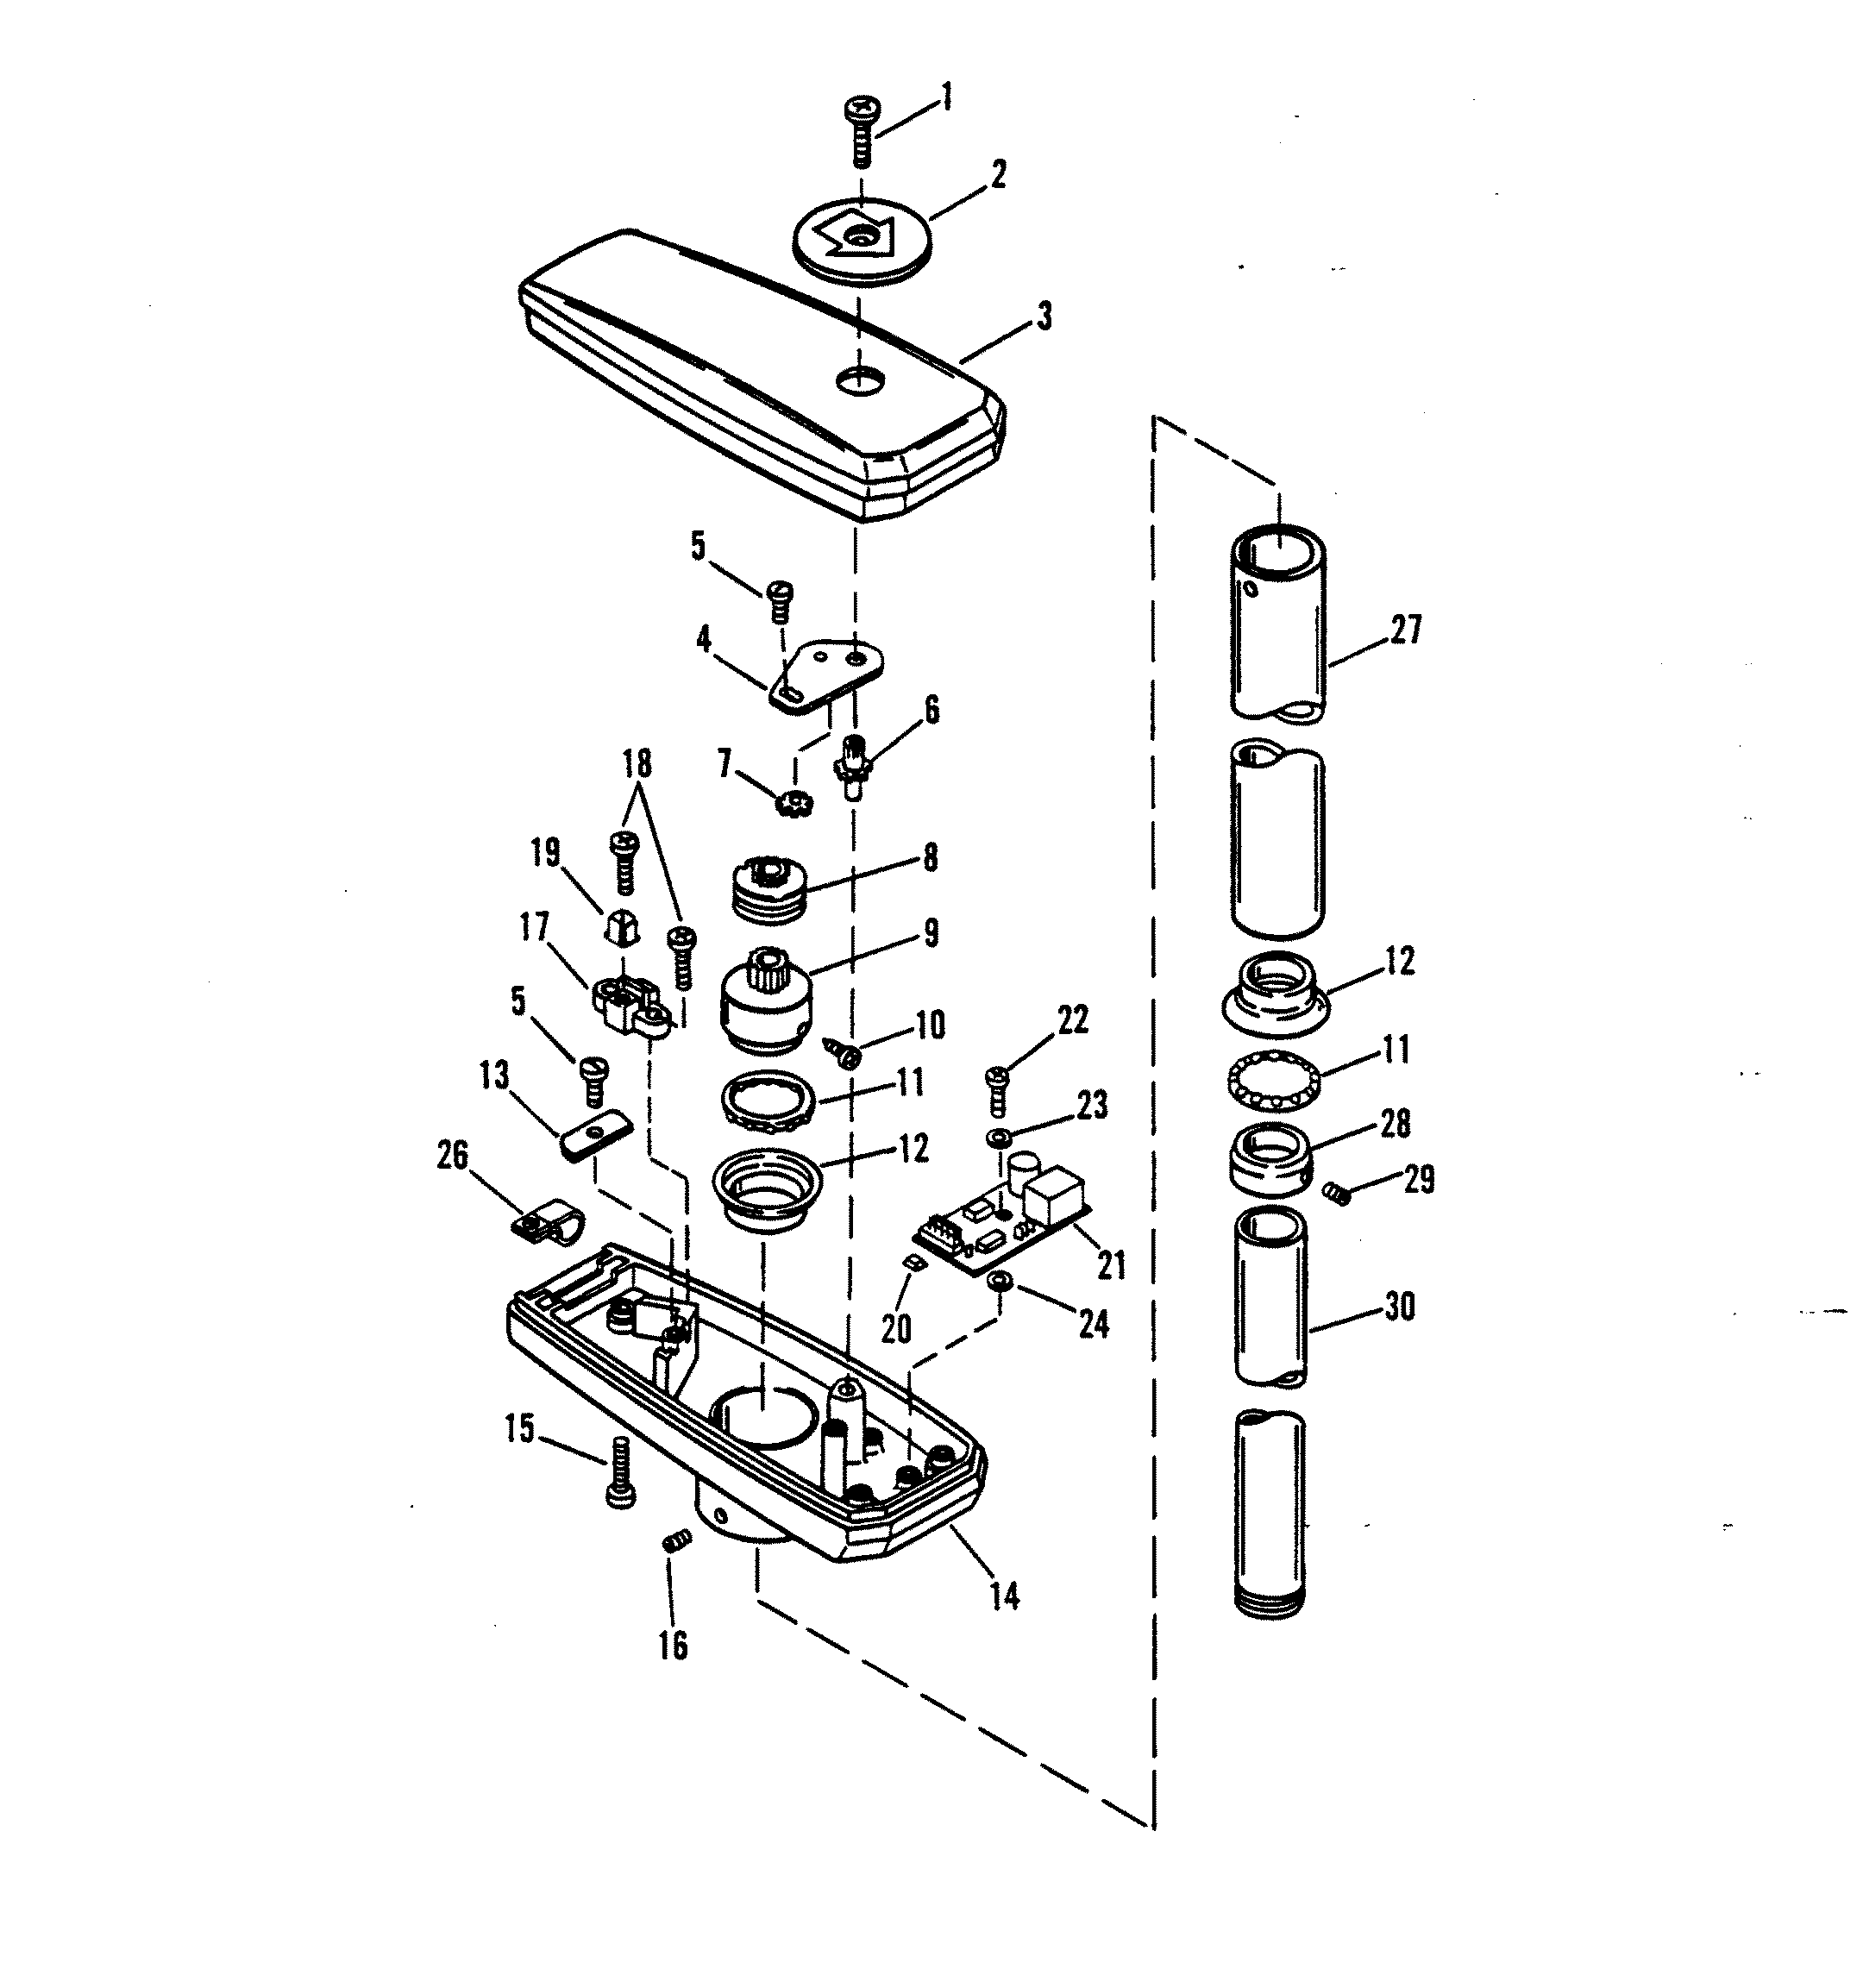 paddle boat parts diagram